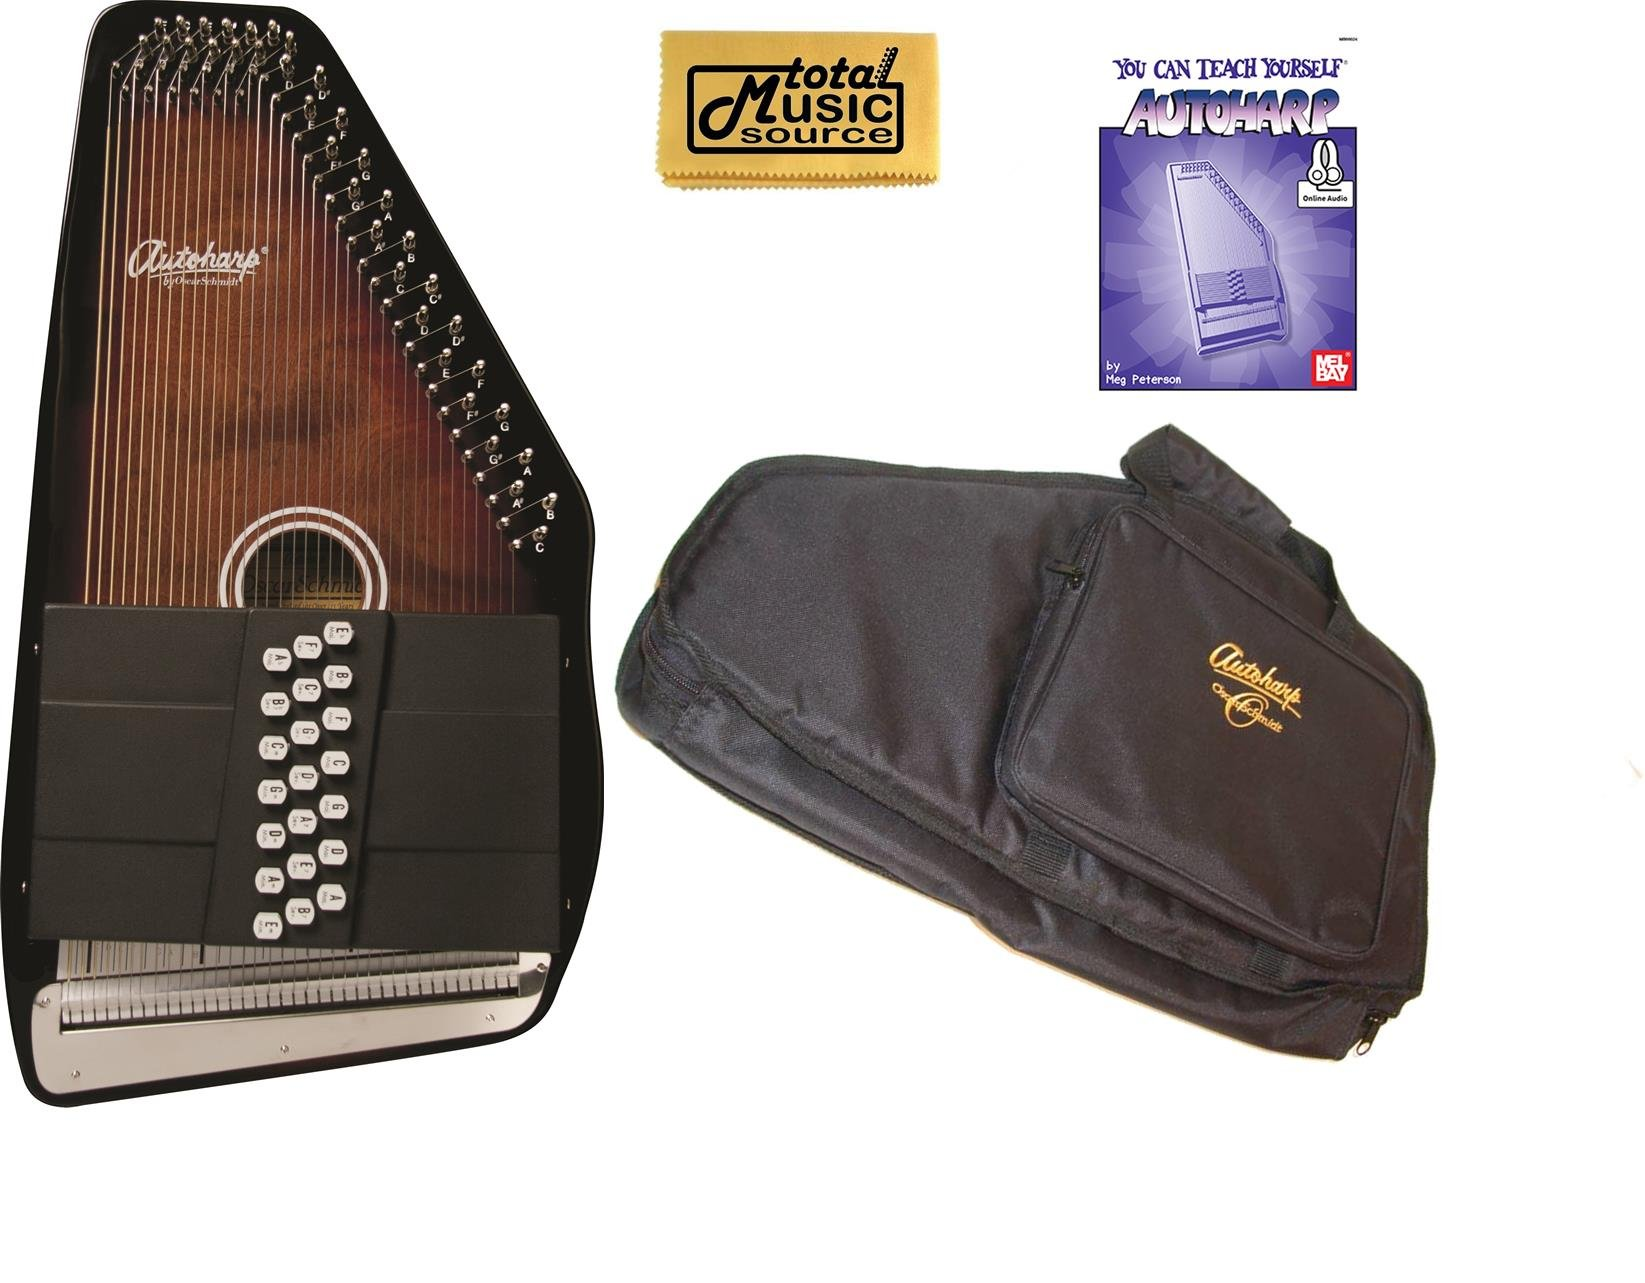 Oscar Schmidt 21 Chord Classic Autoharp w/ Gig Bagm & Melbay Book, OS21C PACKAGE